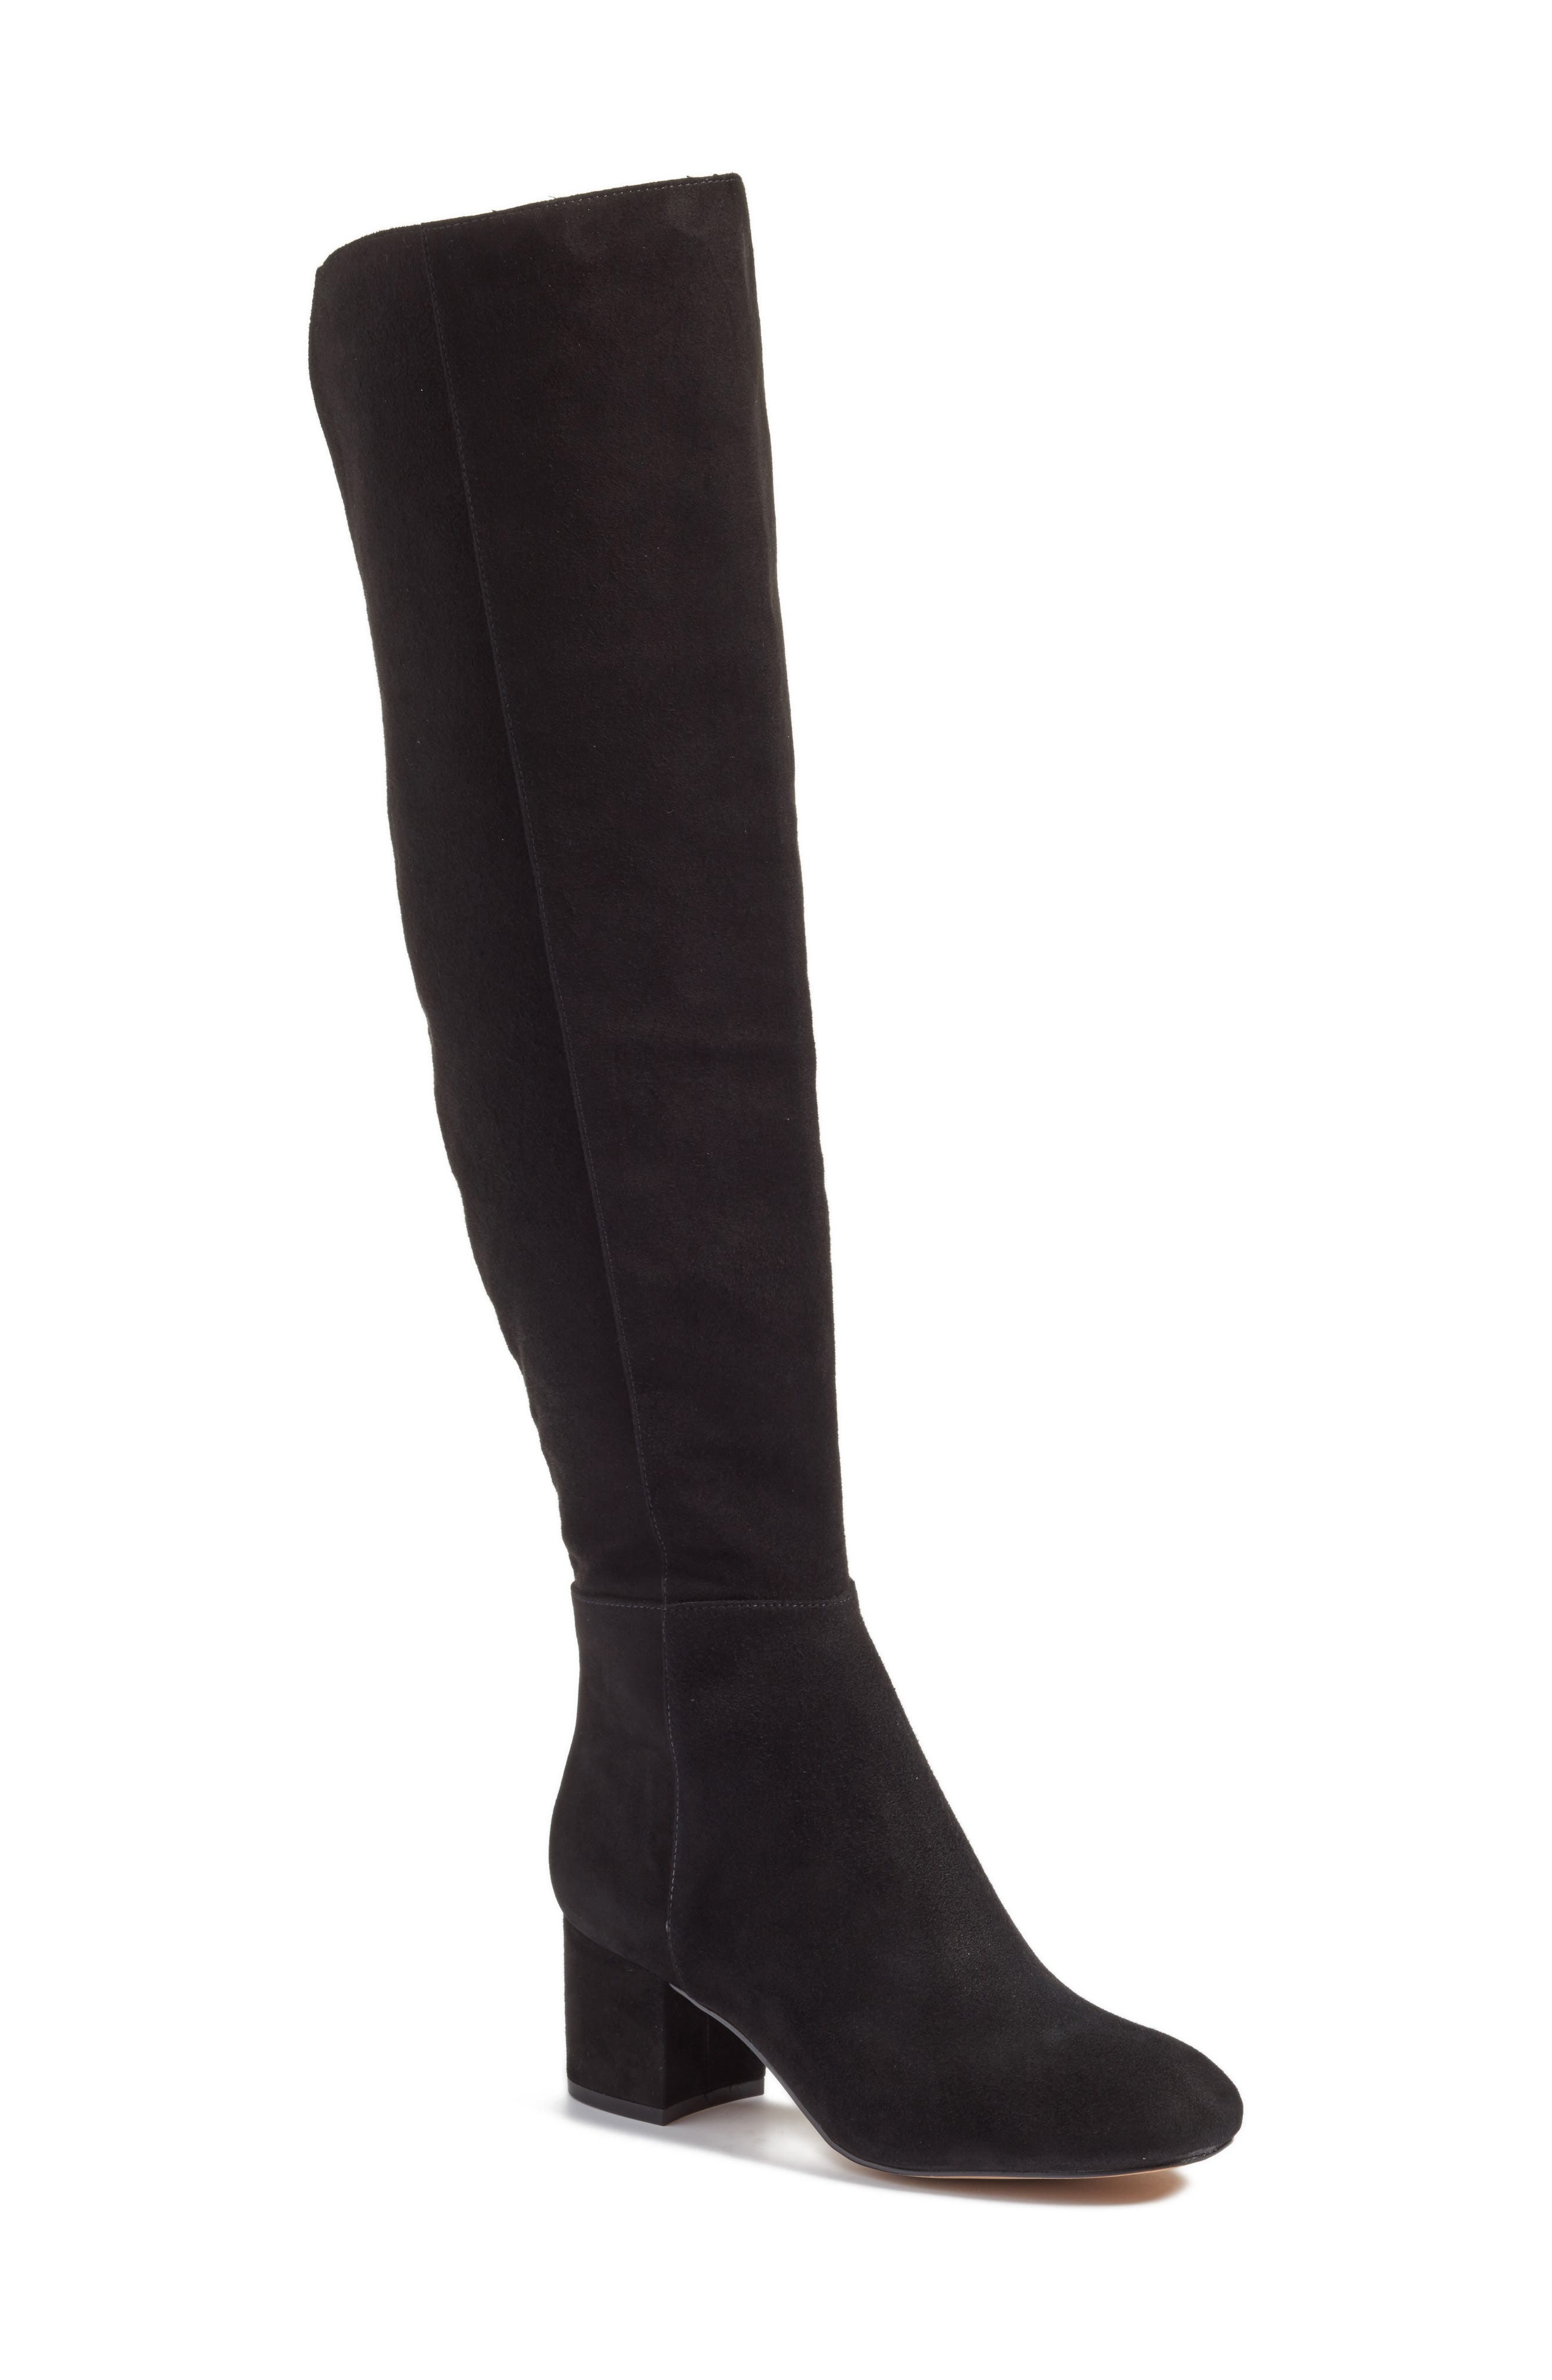 Scarlett Over the Knee Boot,                         Main,                         color, 001